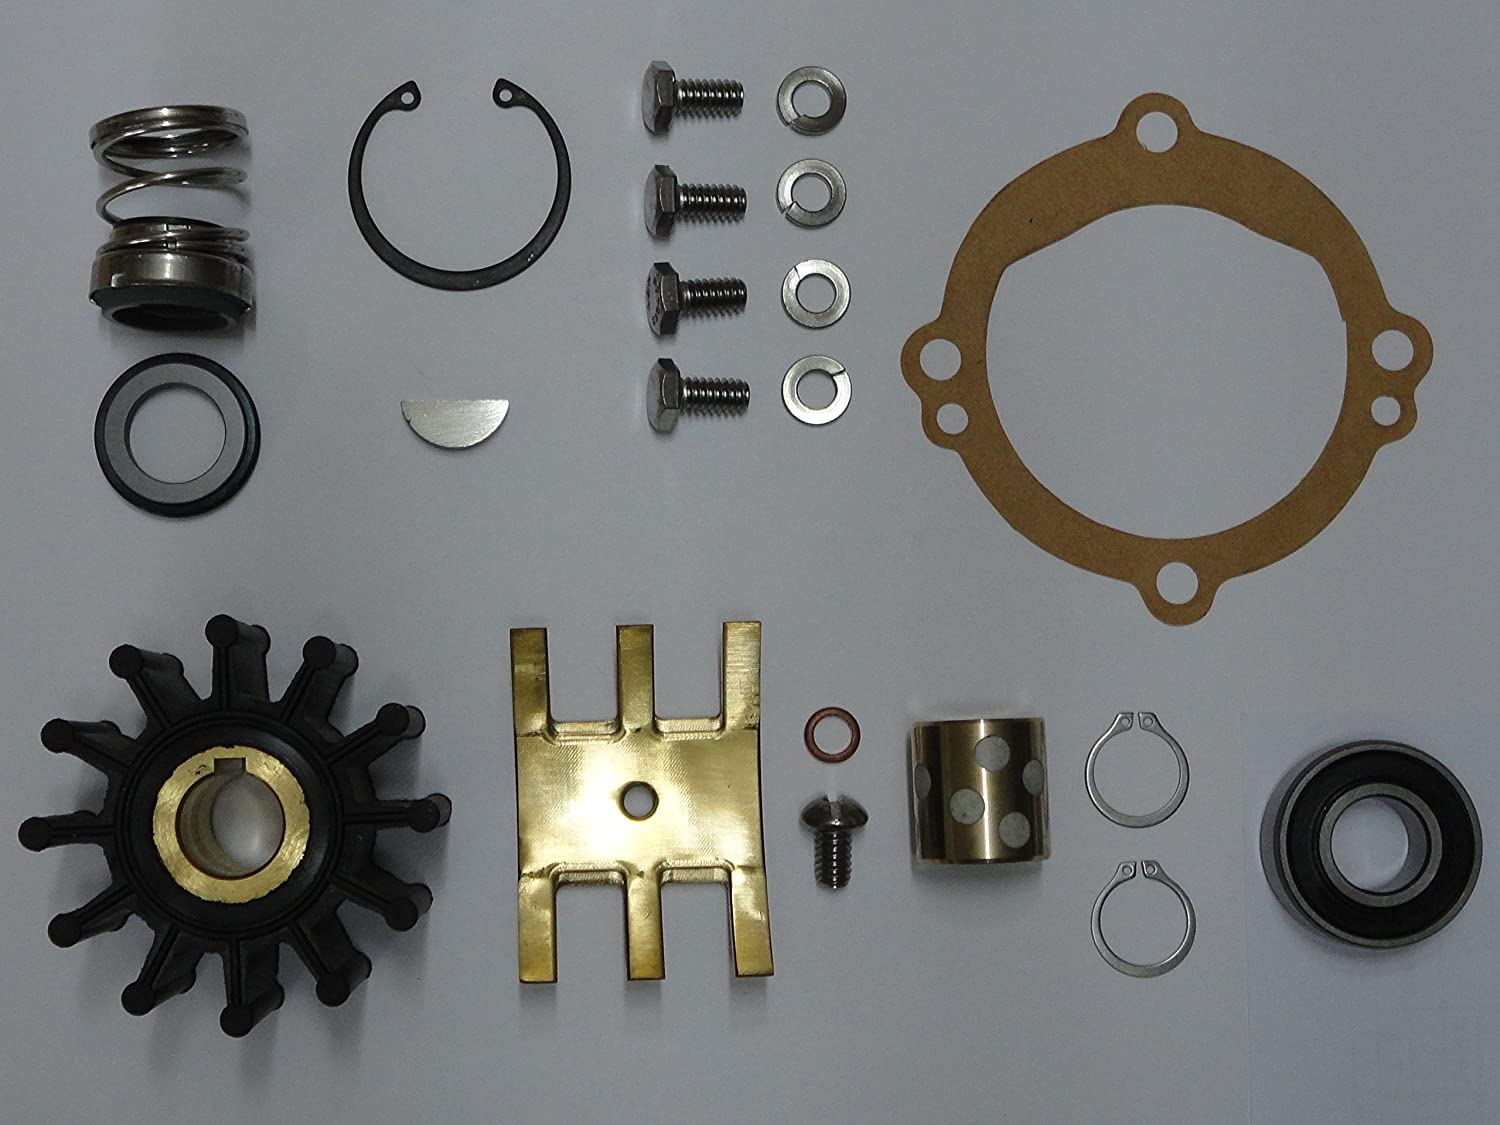 StayCoolPumps Major Repair Kit Replaces Crusader 20311 Sherwood 11068 Water Pump E35 R102